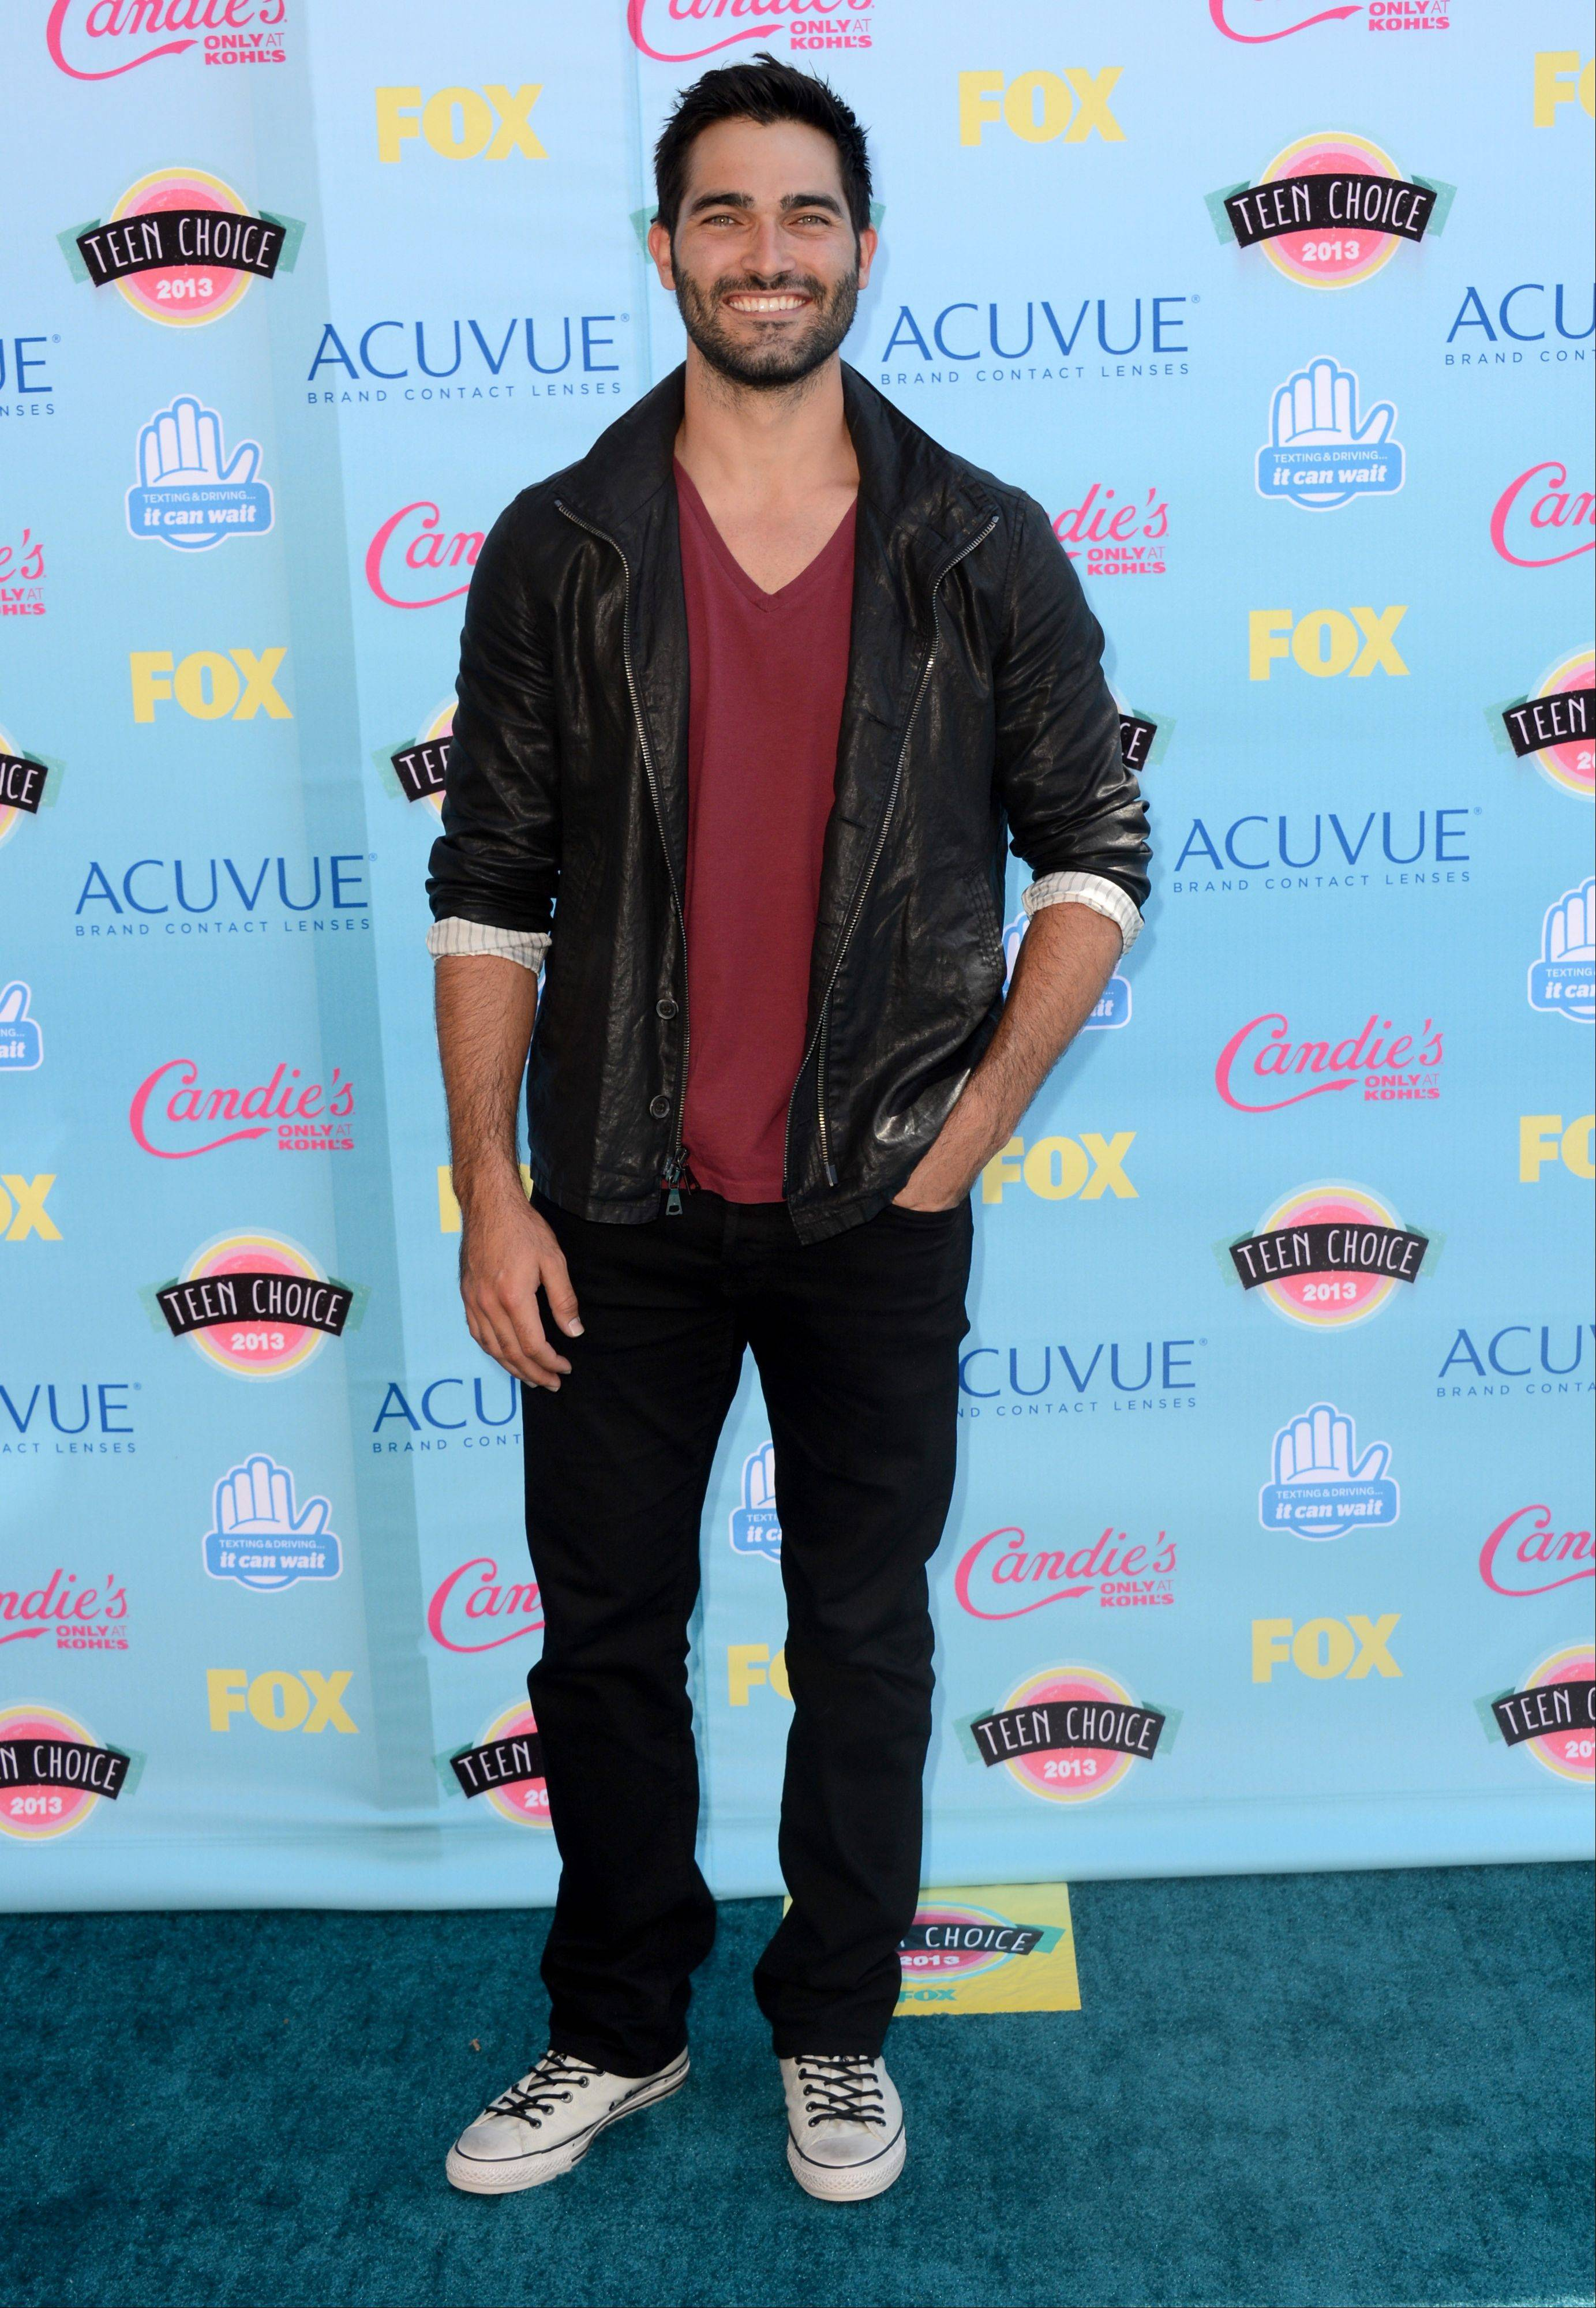 """Teen Wolf"" star Tyler Hoechlin arrives at the Teen Choice Awards at the Gibson Amphitheater on Sunday in Los Angeles."